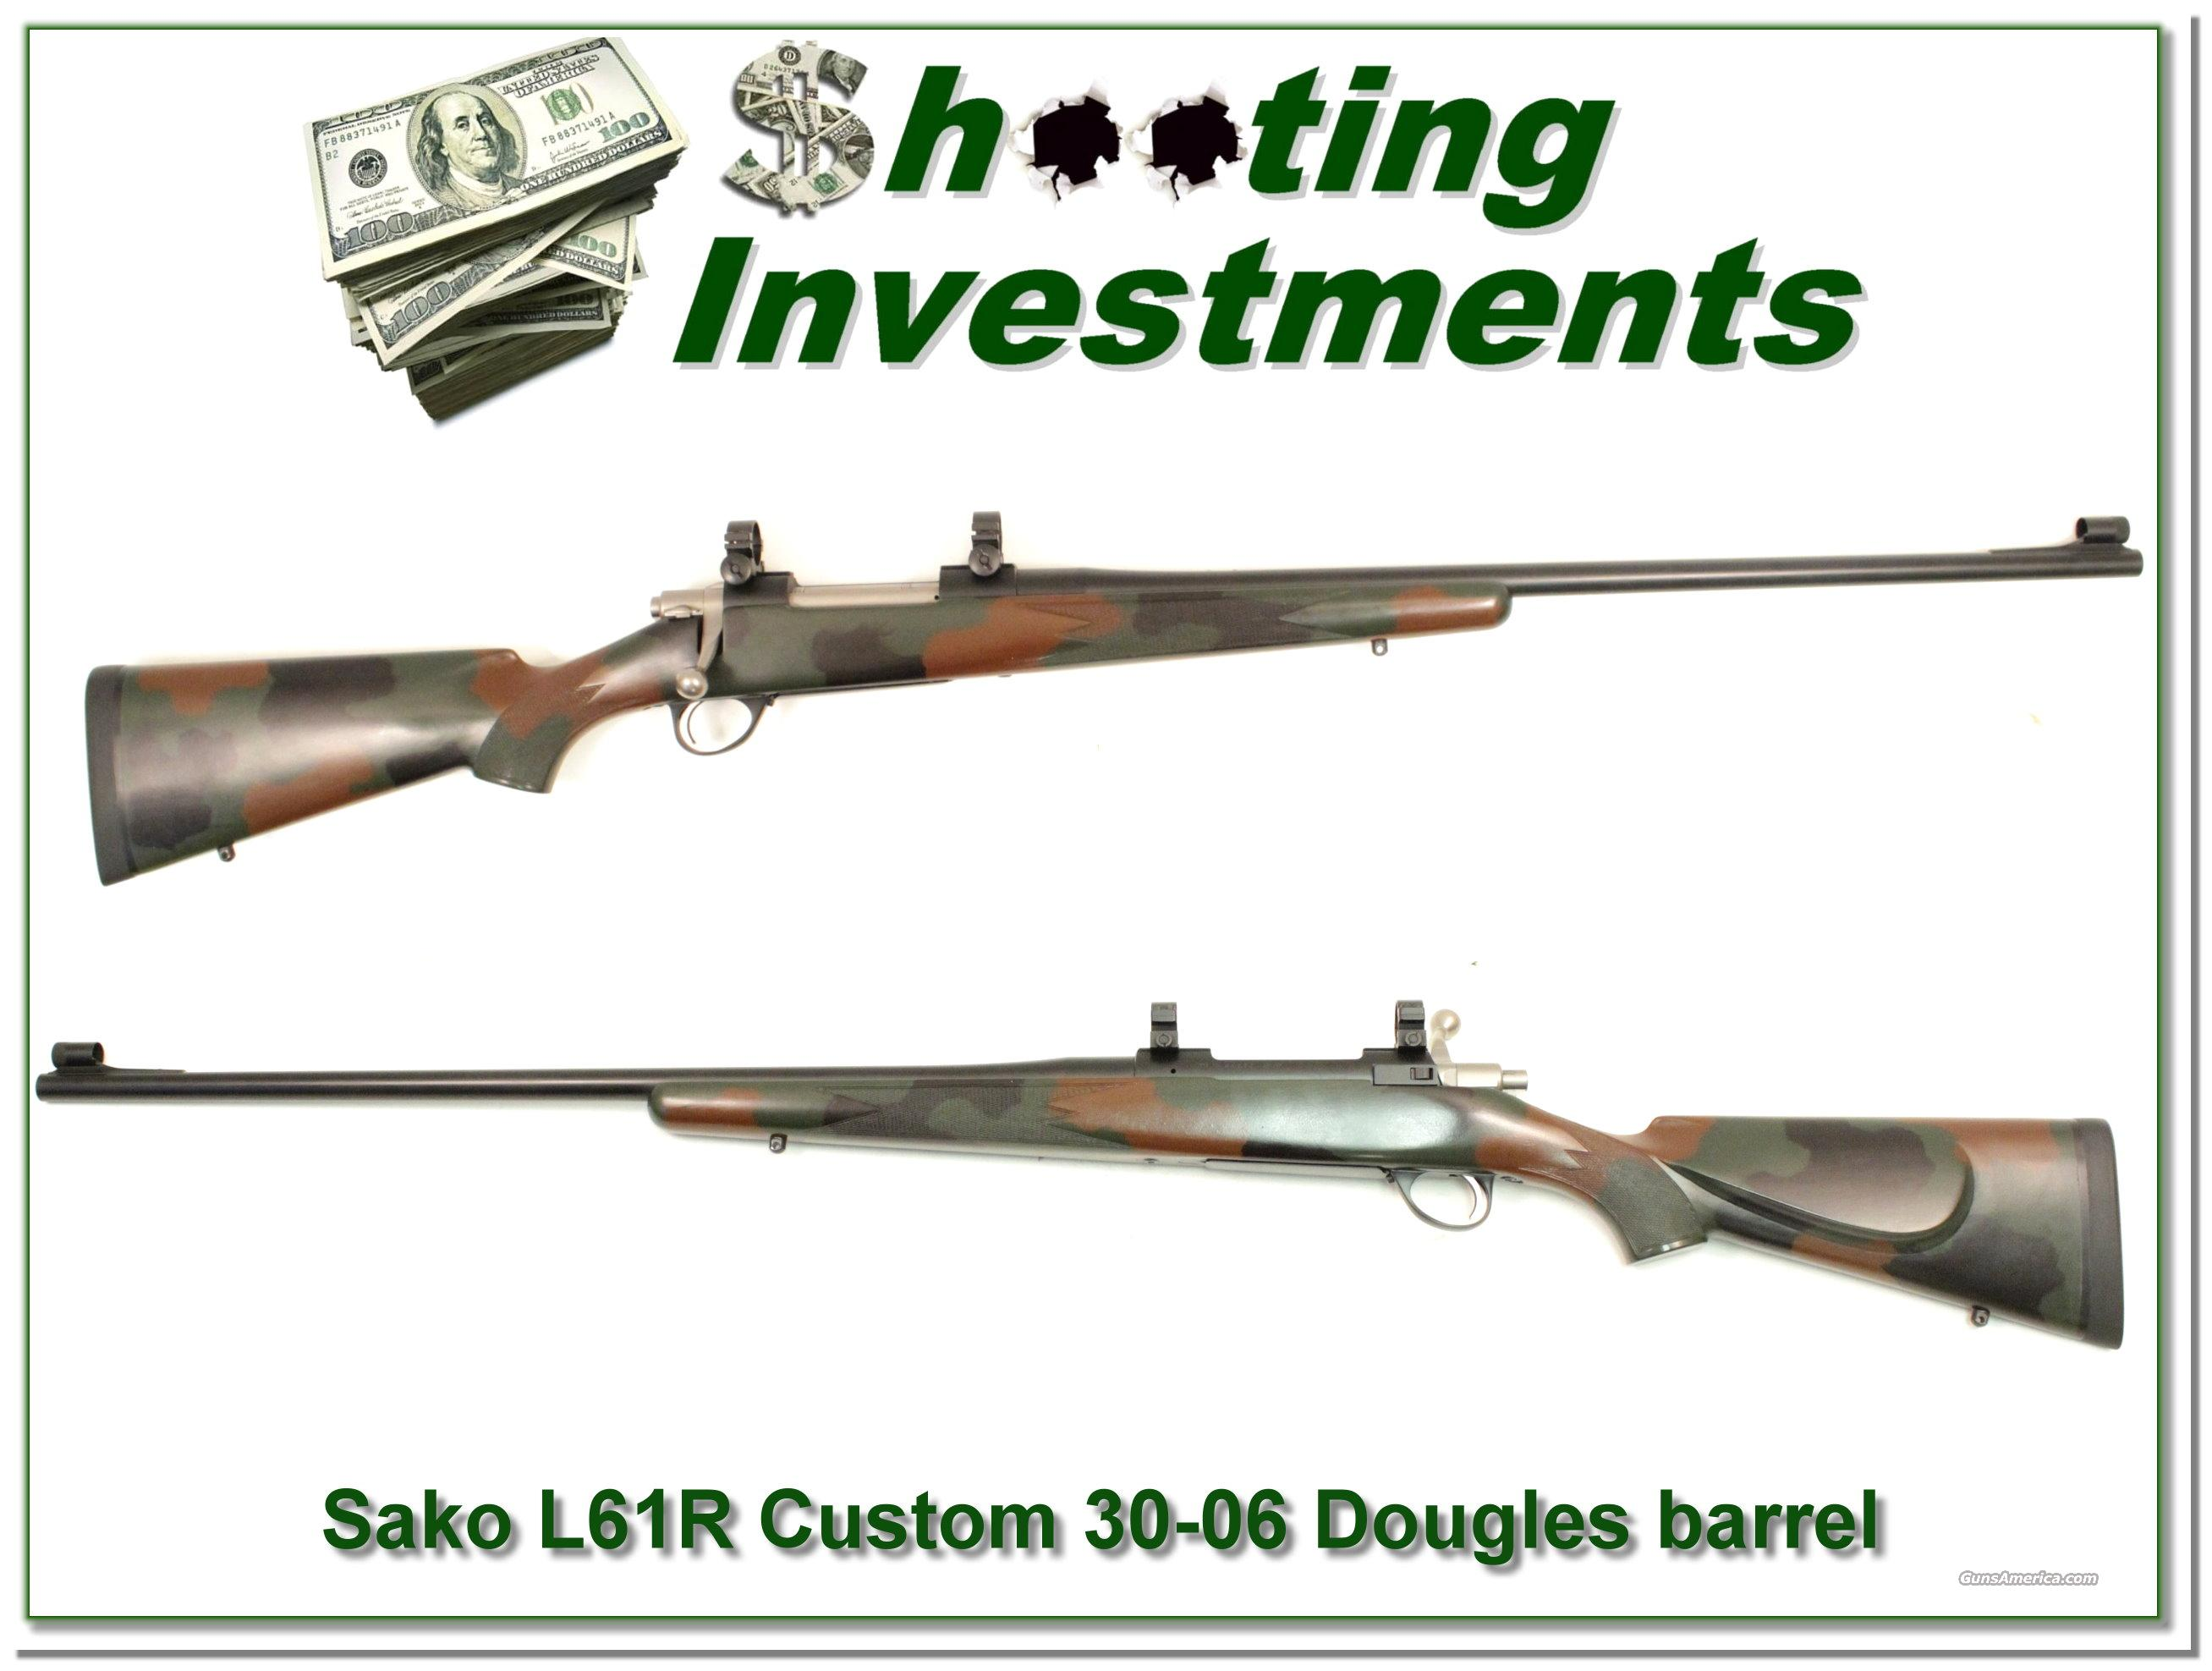 Sako L61R Custom Douglas 30-06 barrel Exc Cond!  Guns > Rifles > Sako Rifles > Other Bolt Action